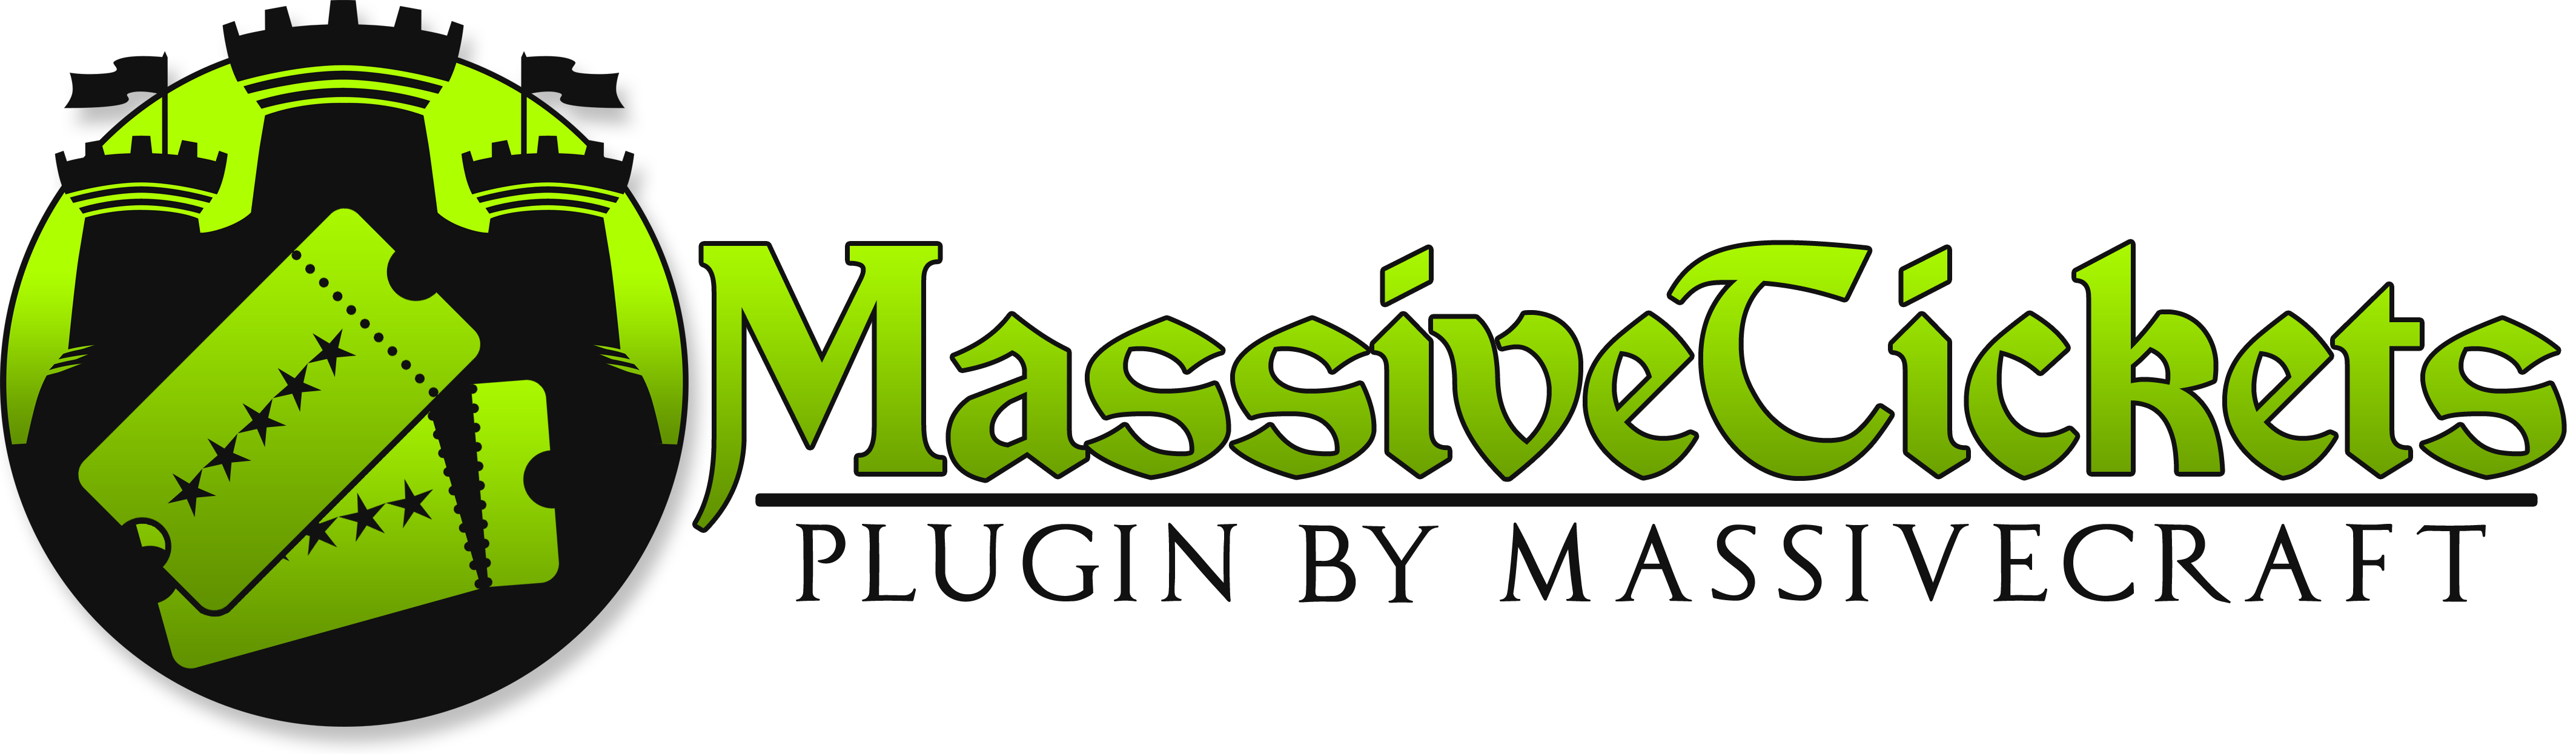 massivecraft-logotype-plugin-massivetickets